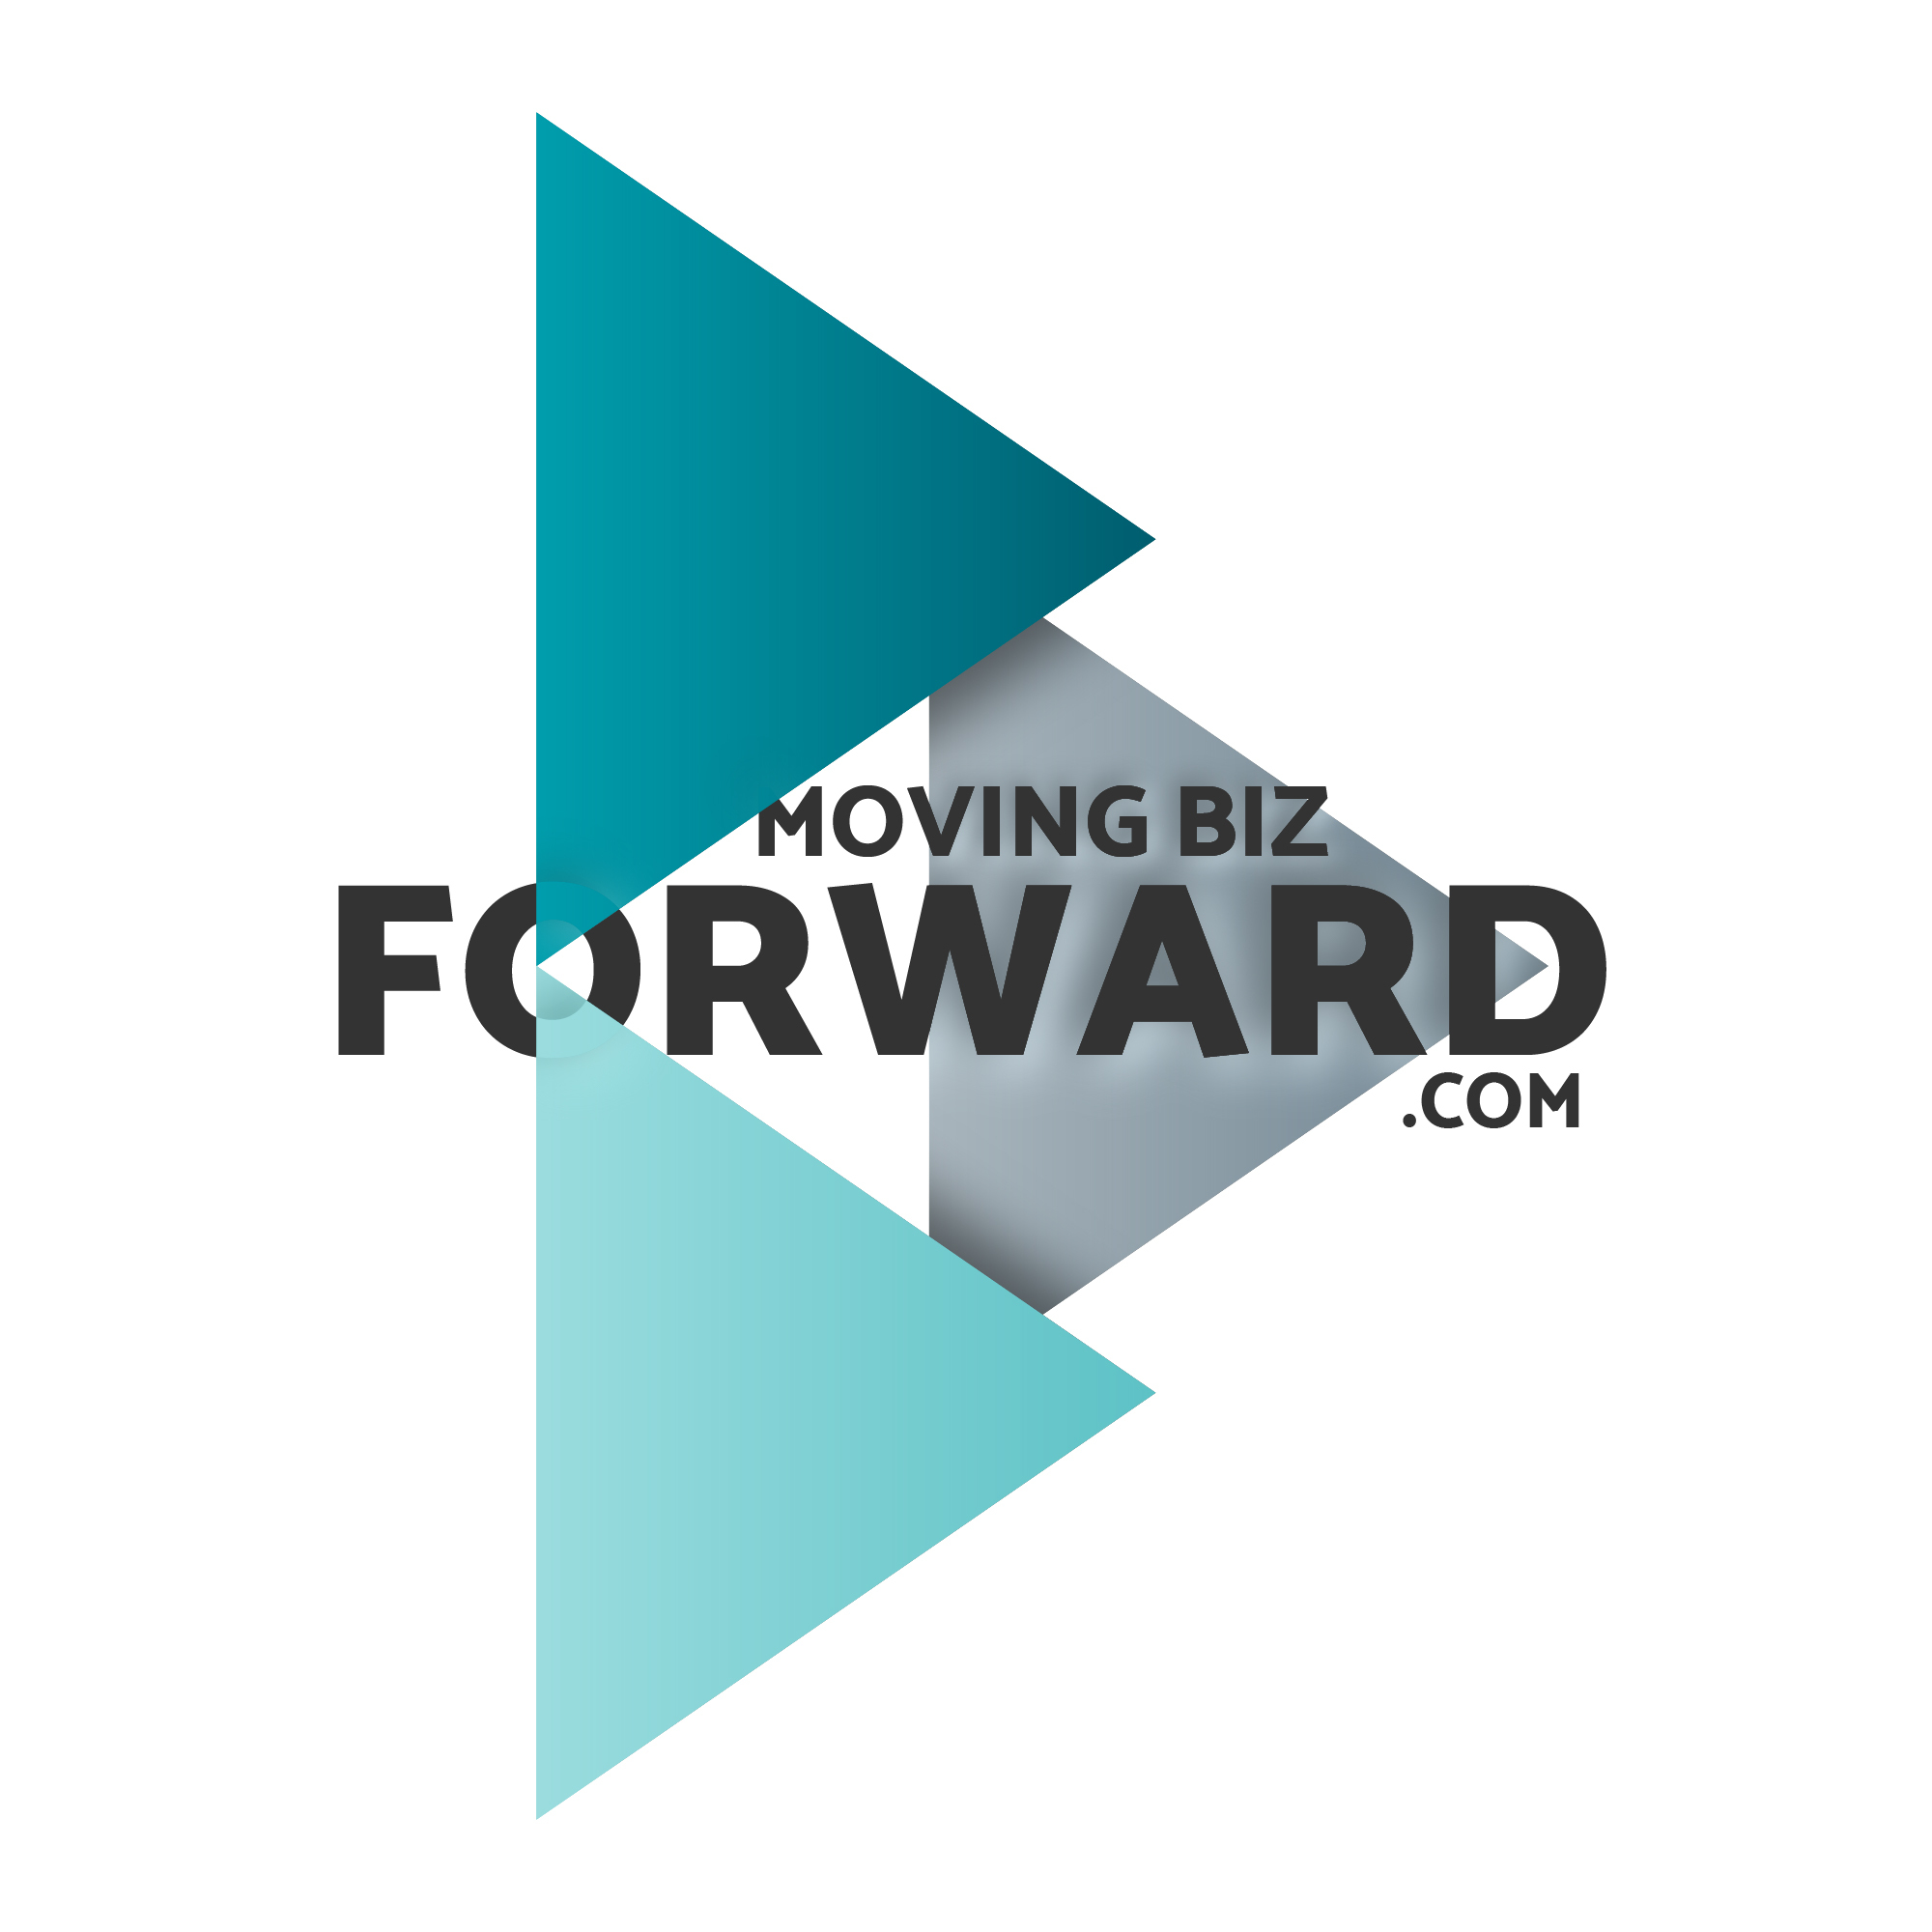 Ocala CEP, Marion County Board of Commissioners launch Moving Biz Forward initiative